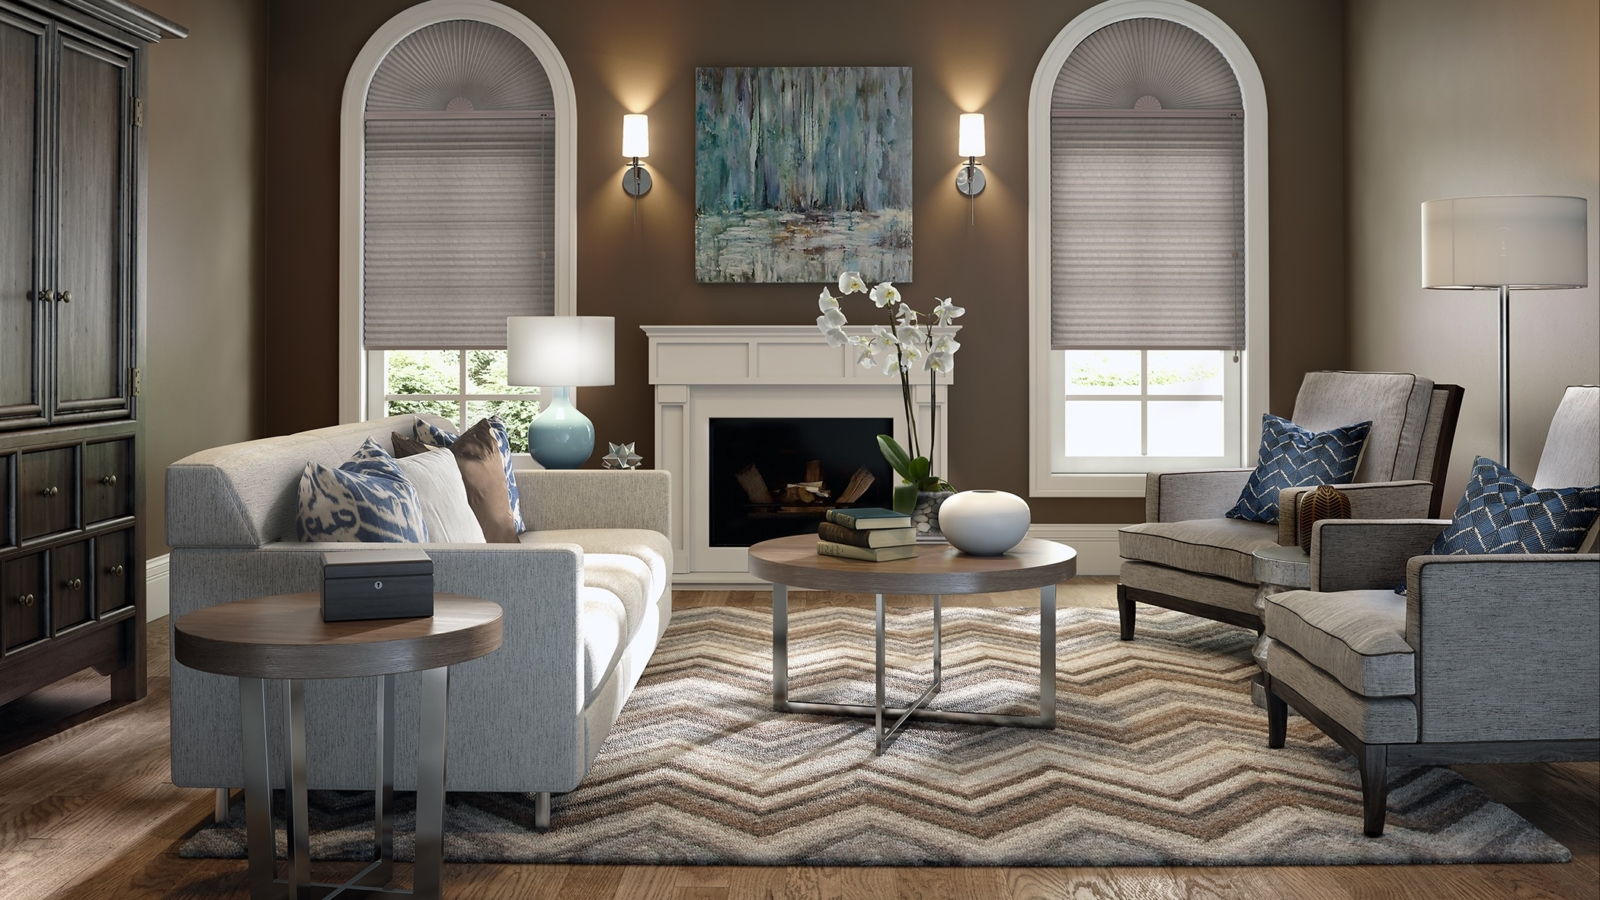 roman sunburst top shades vignette inspirations shutters snyder and modern s window alustra blinds snyders